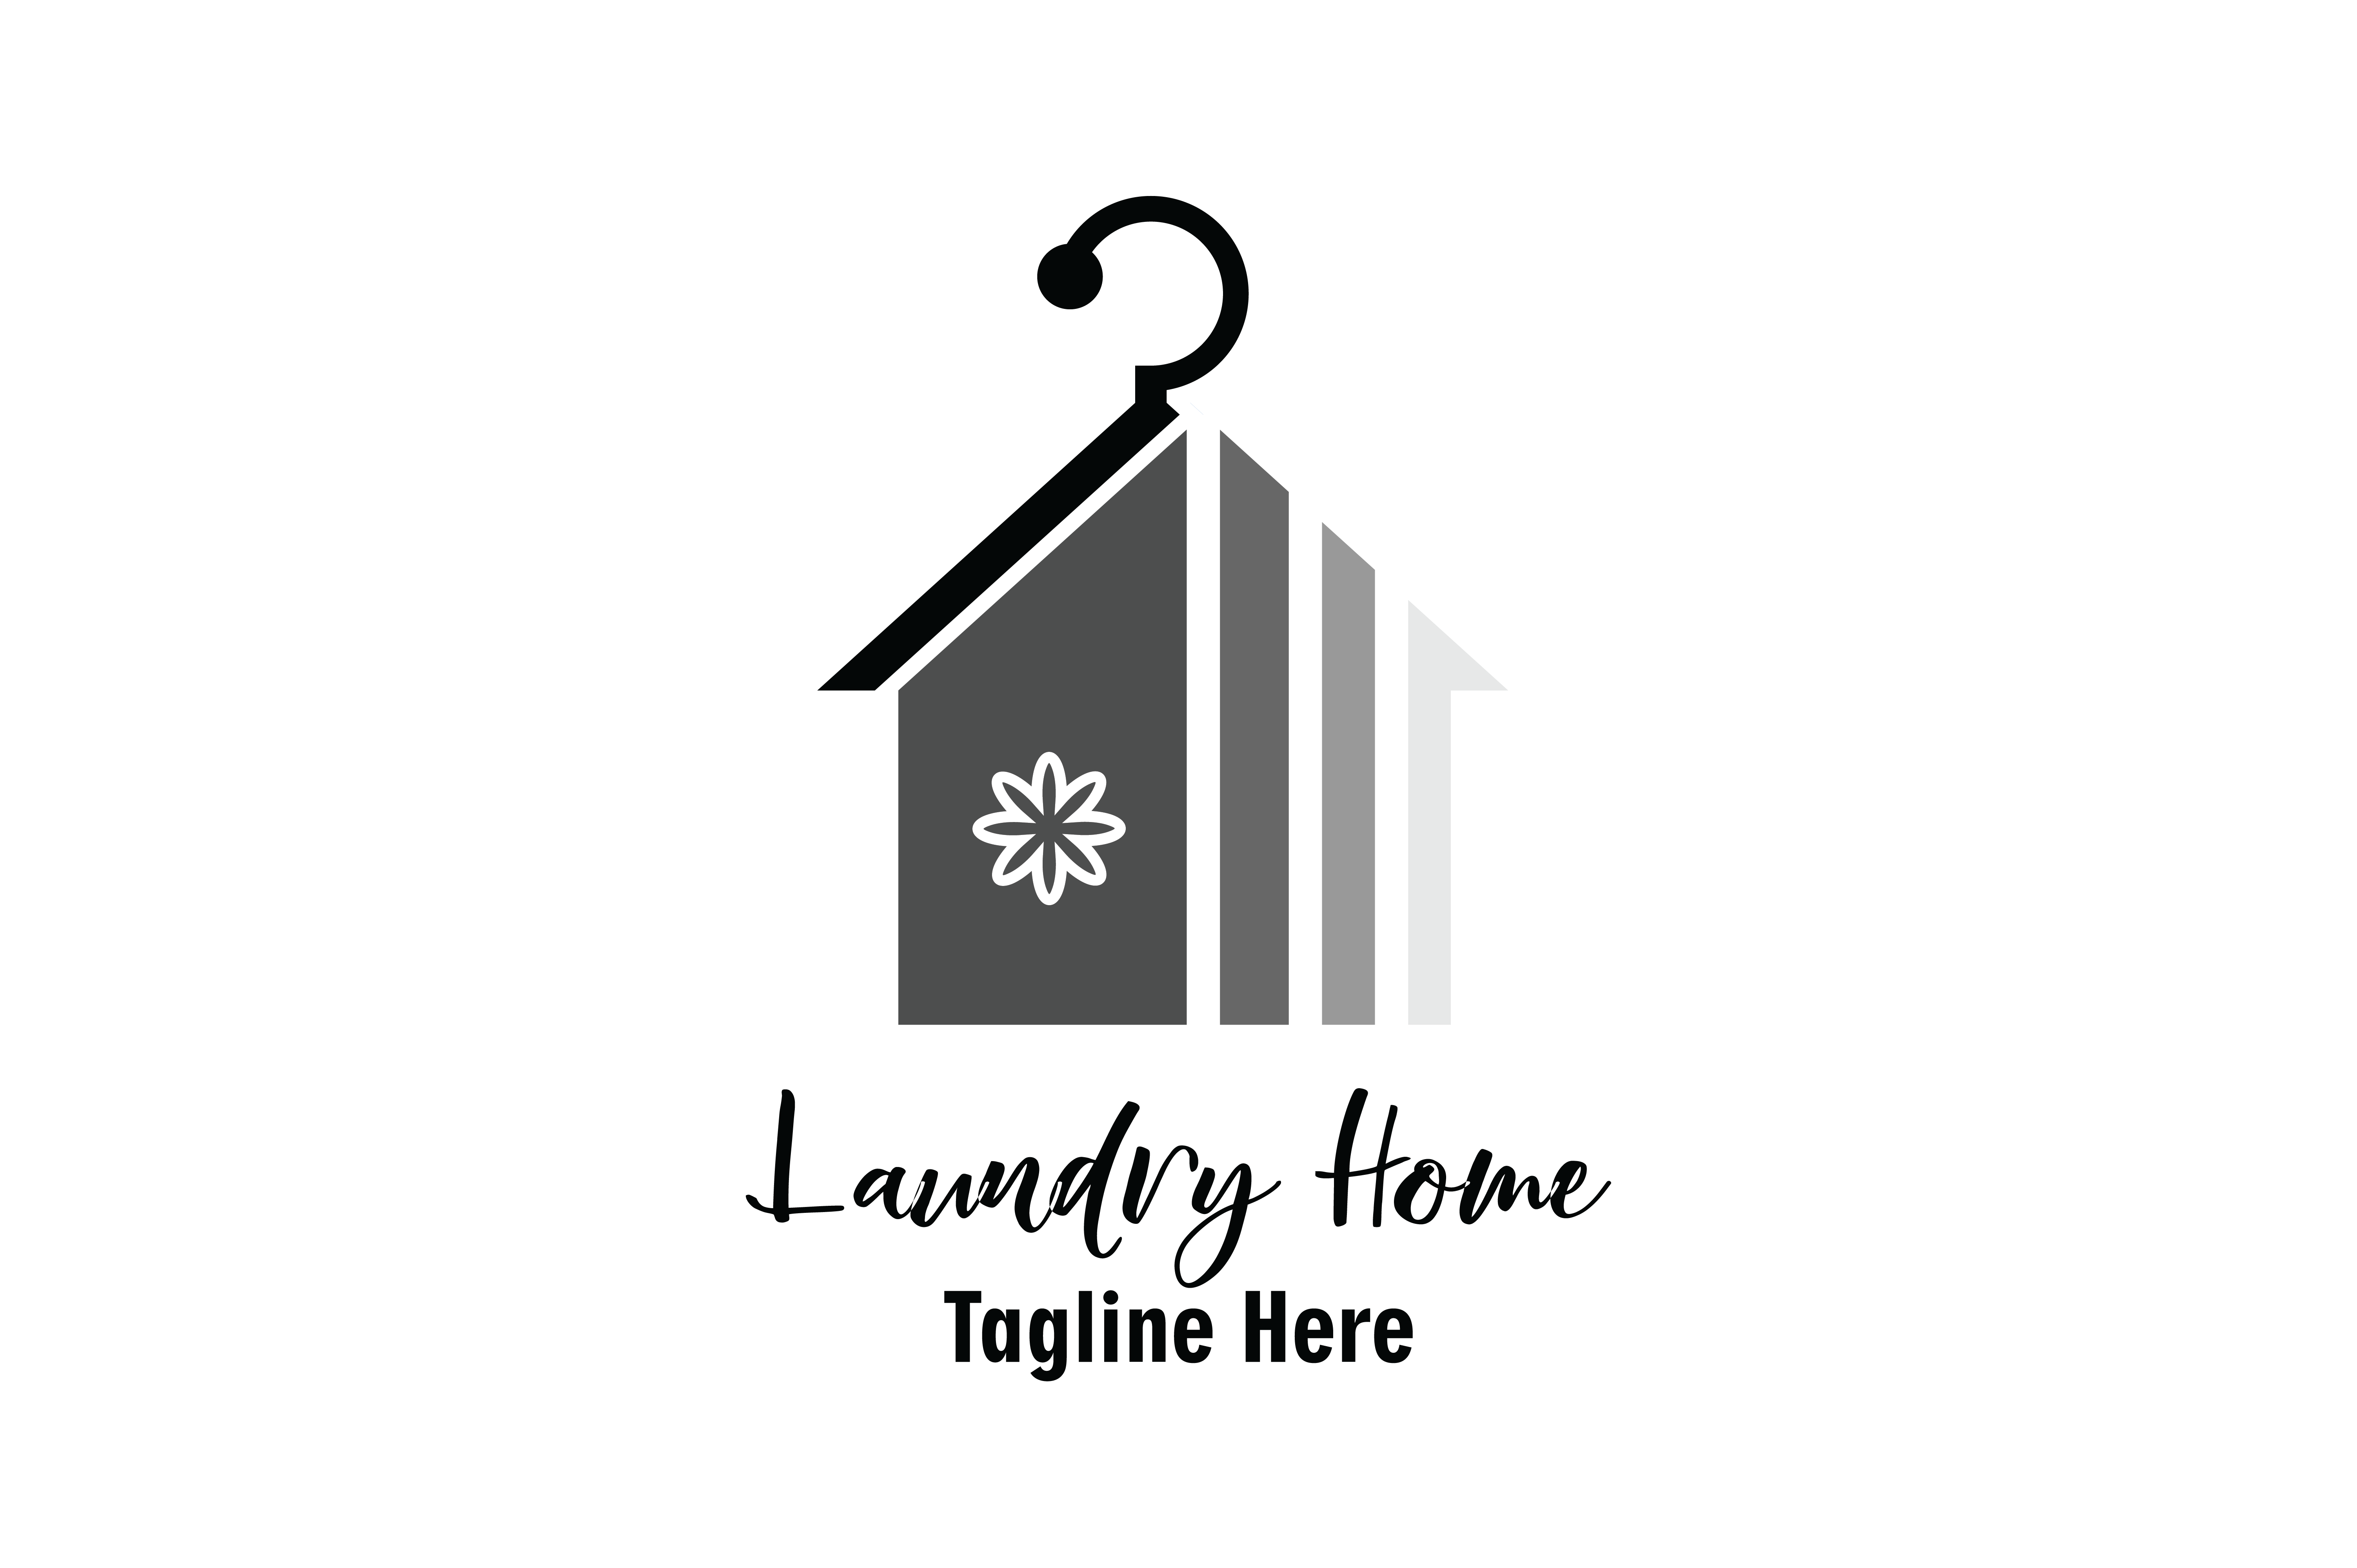 Laundry Home Logo Vector Graphic By Yuhana Purwanti Creative Fabrica